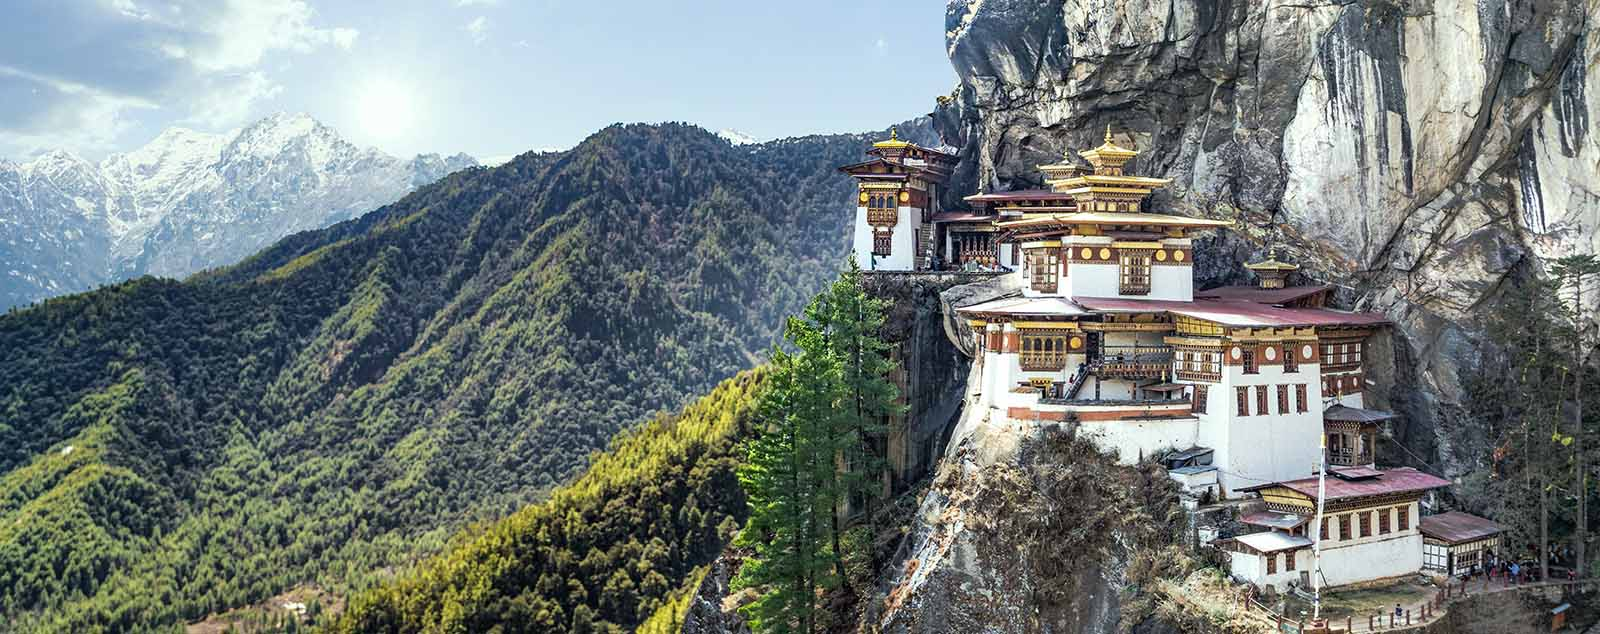 An ornate monastery built into the side of a steep cliff, tree covered and snow topped mountains stretch into the background